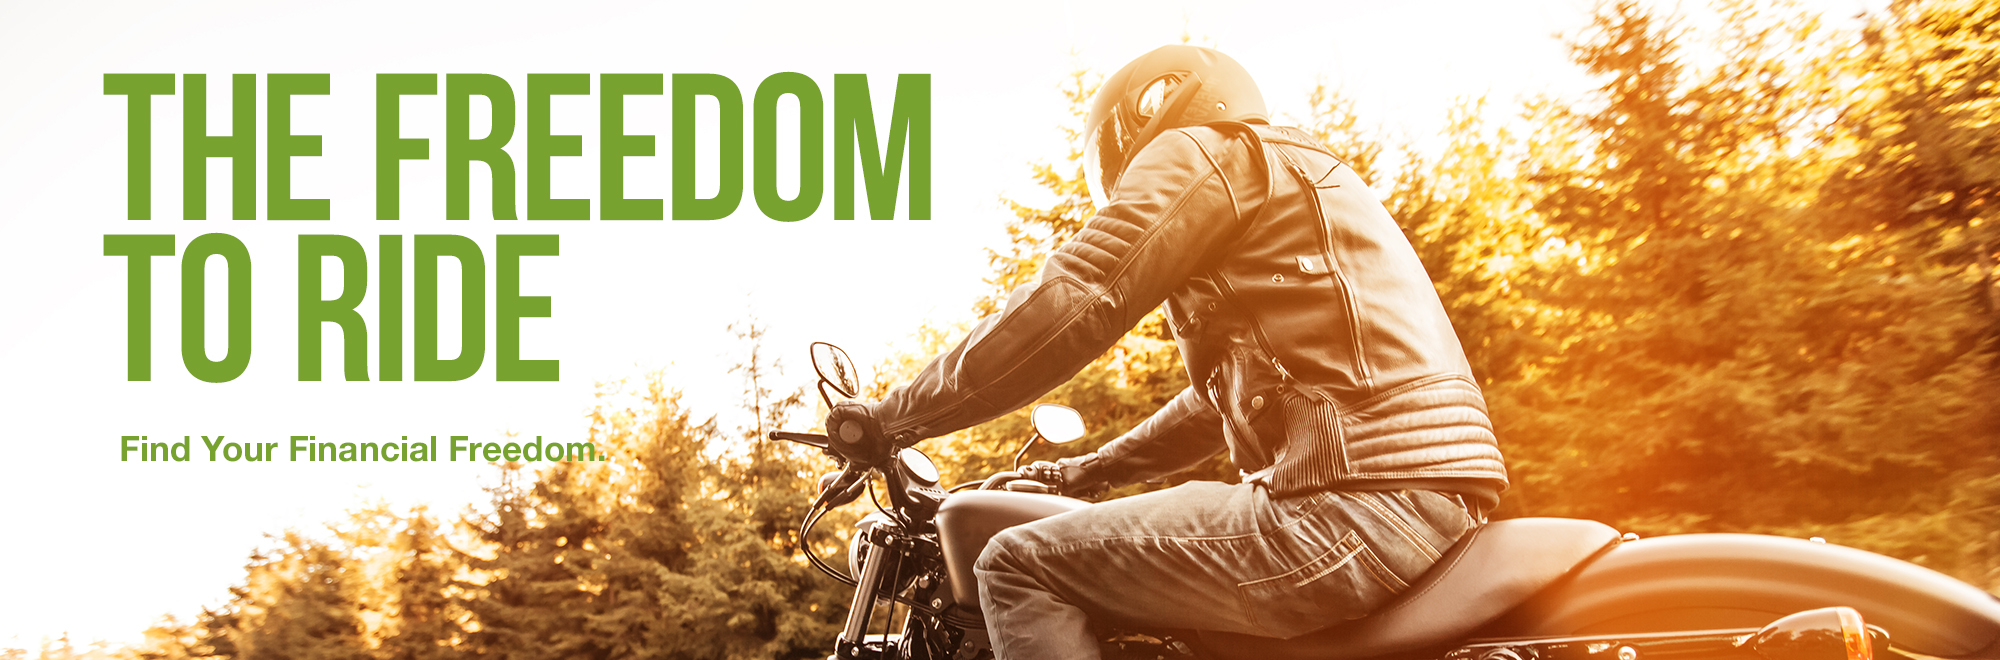 2017 Motorcycle – Free to Be